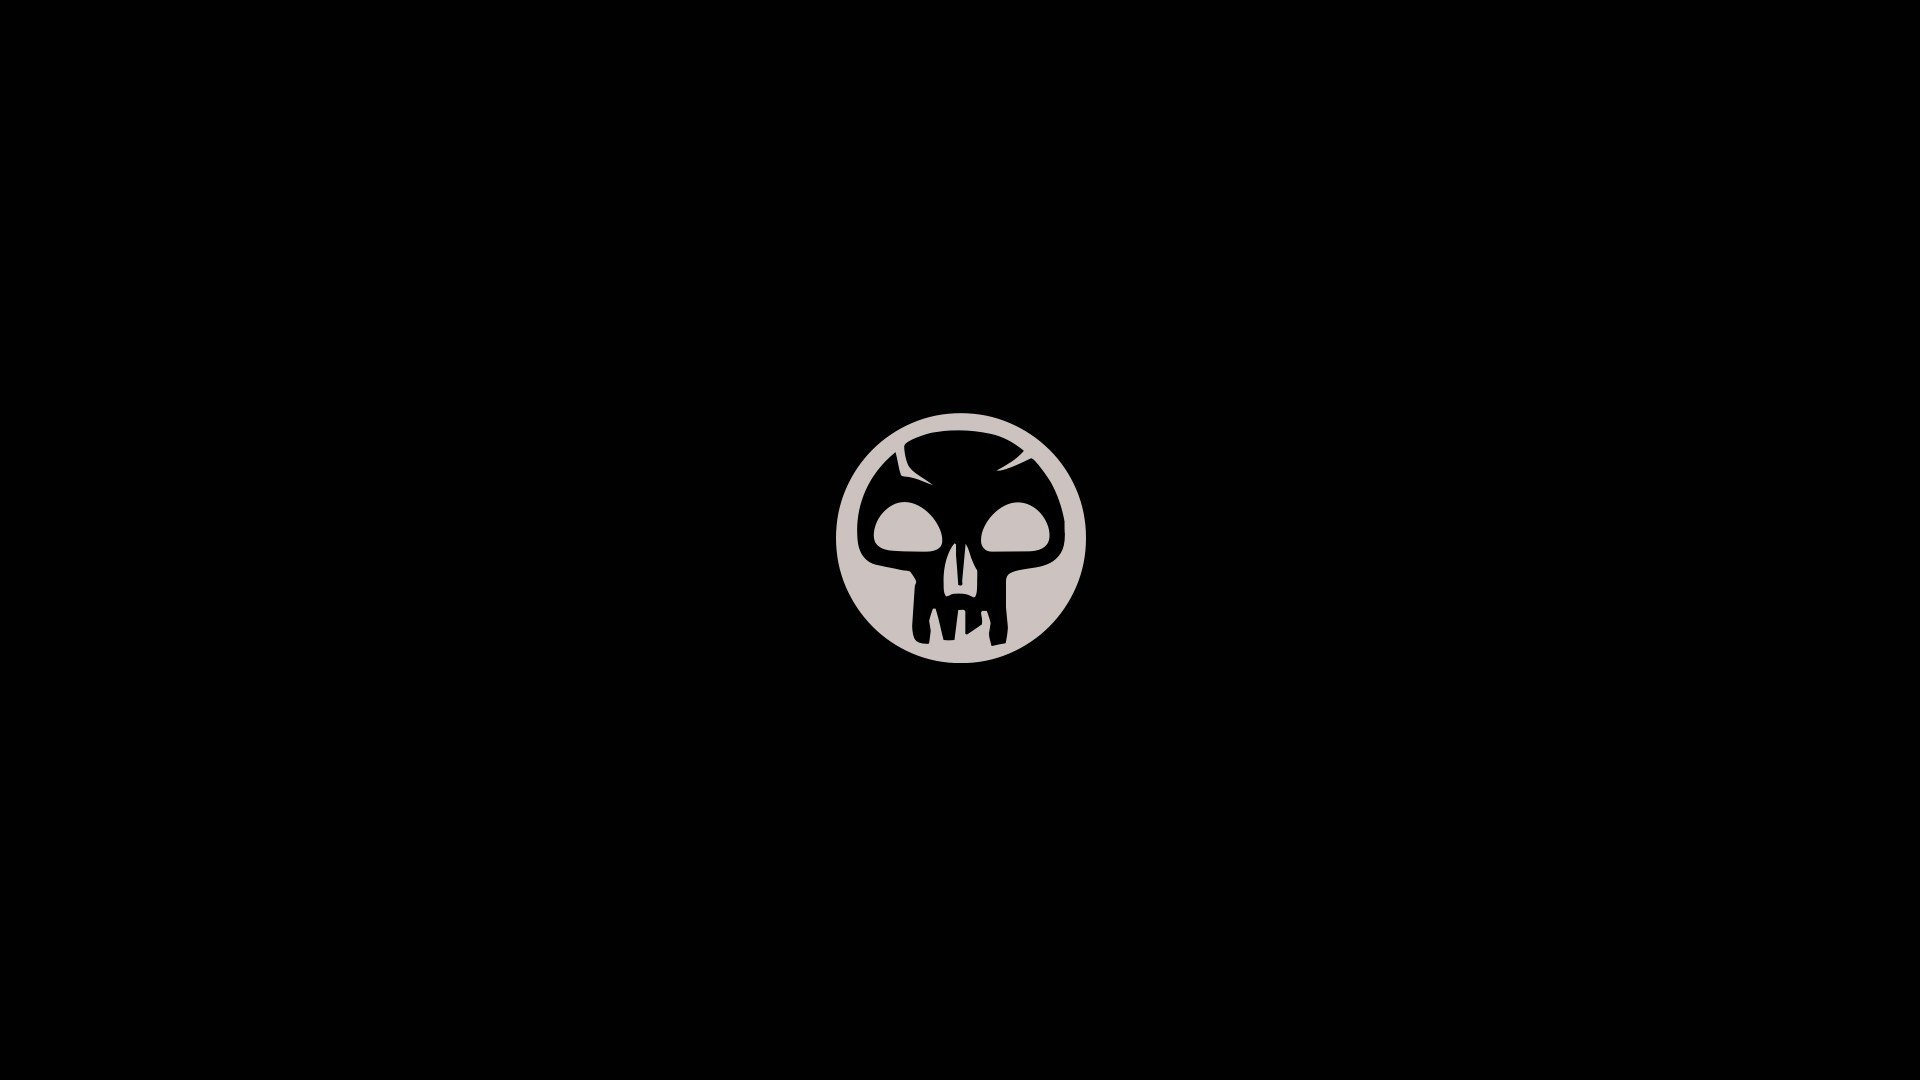 Magic The Gathering Trading Card Games Simple Minimalism Black Background Skull Hd Wallpapers Desktop And Mobile Images Photos